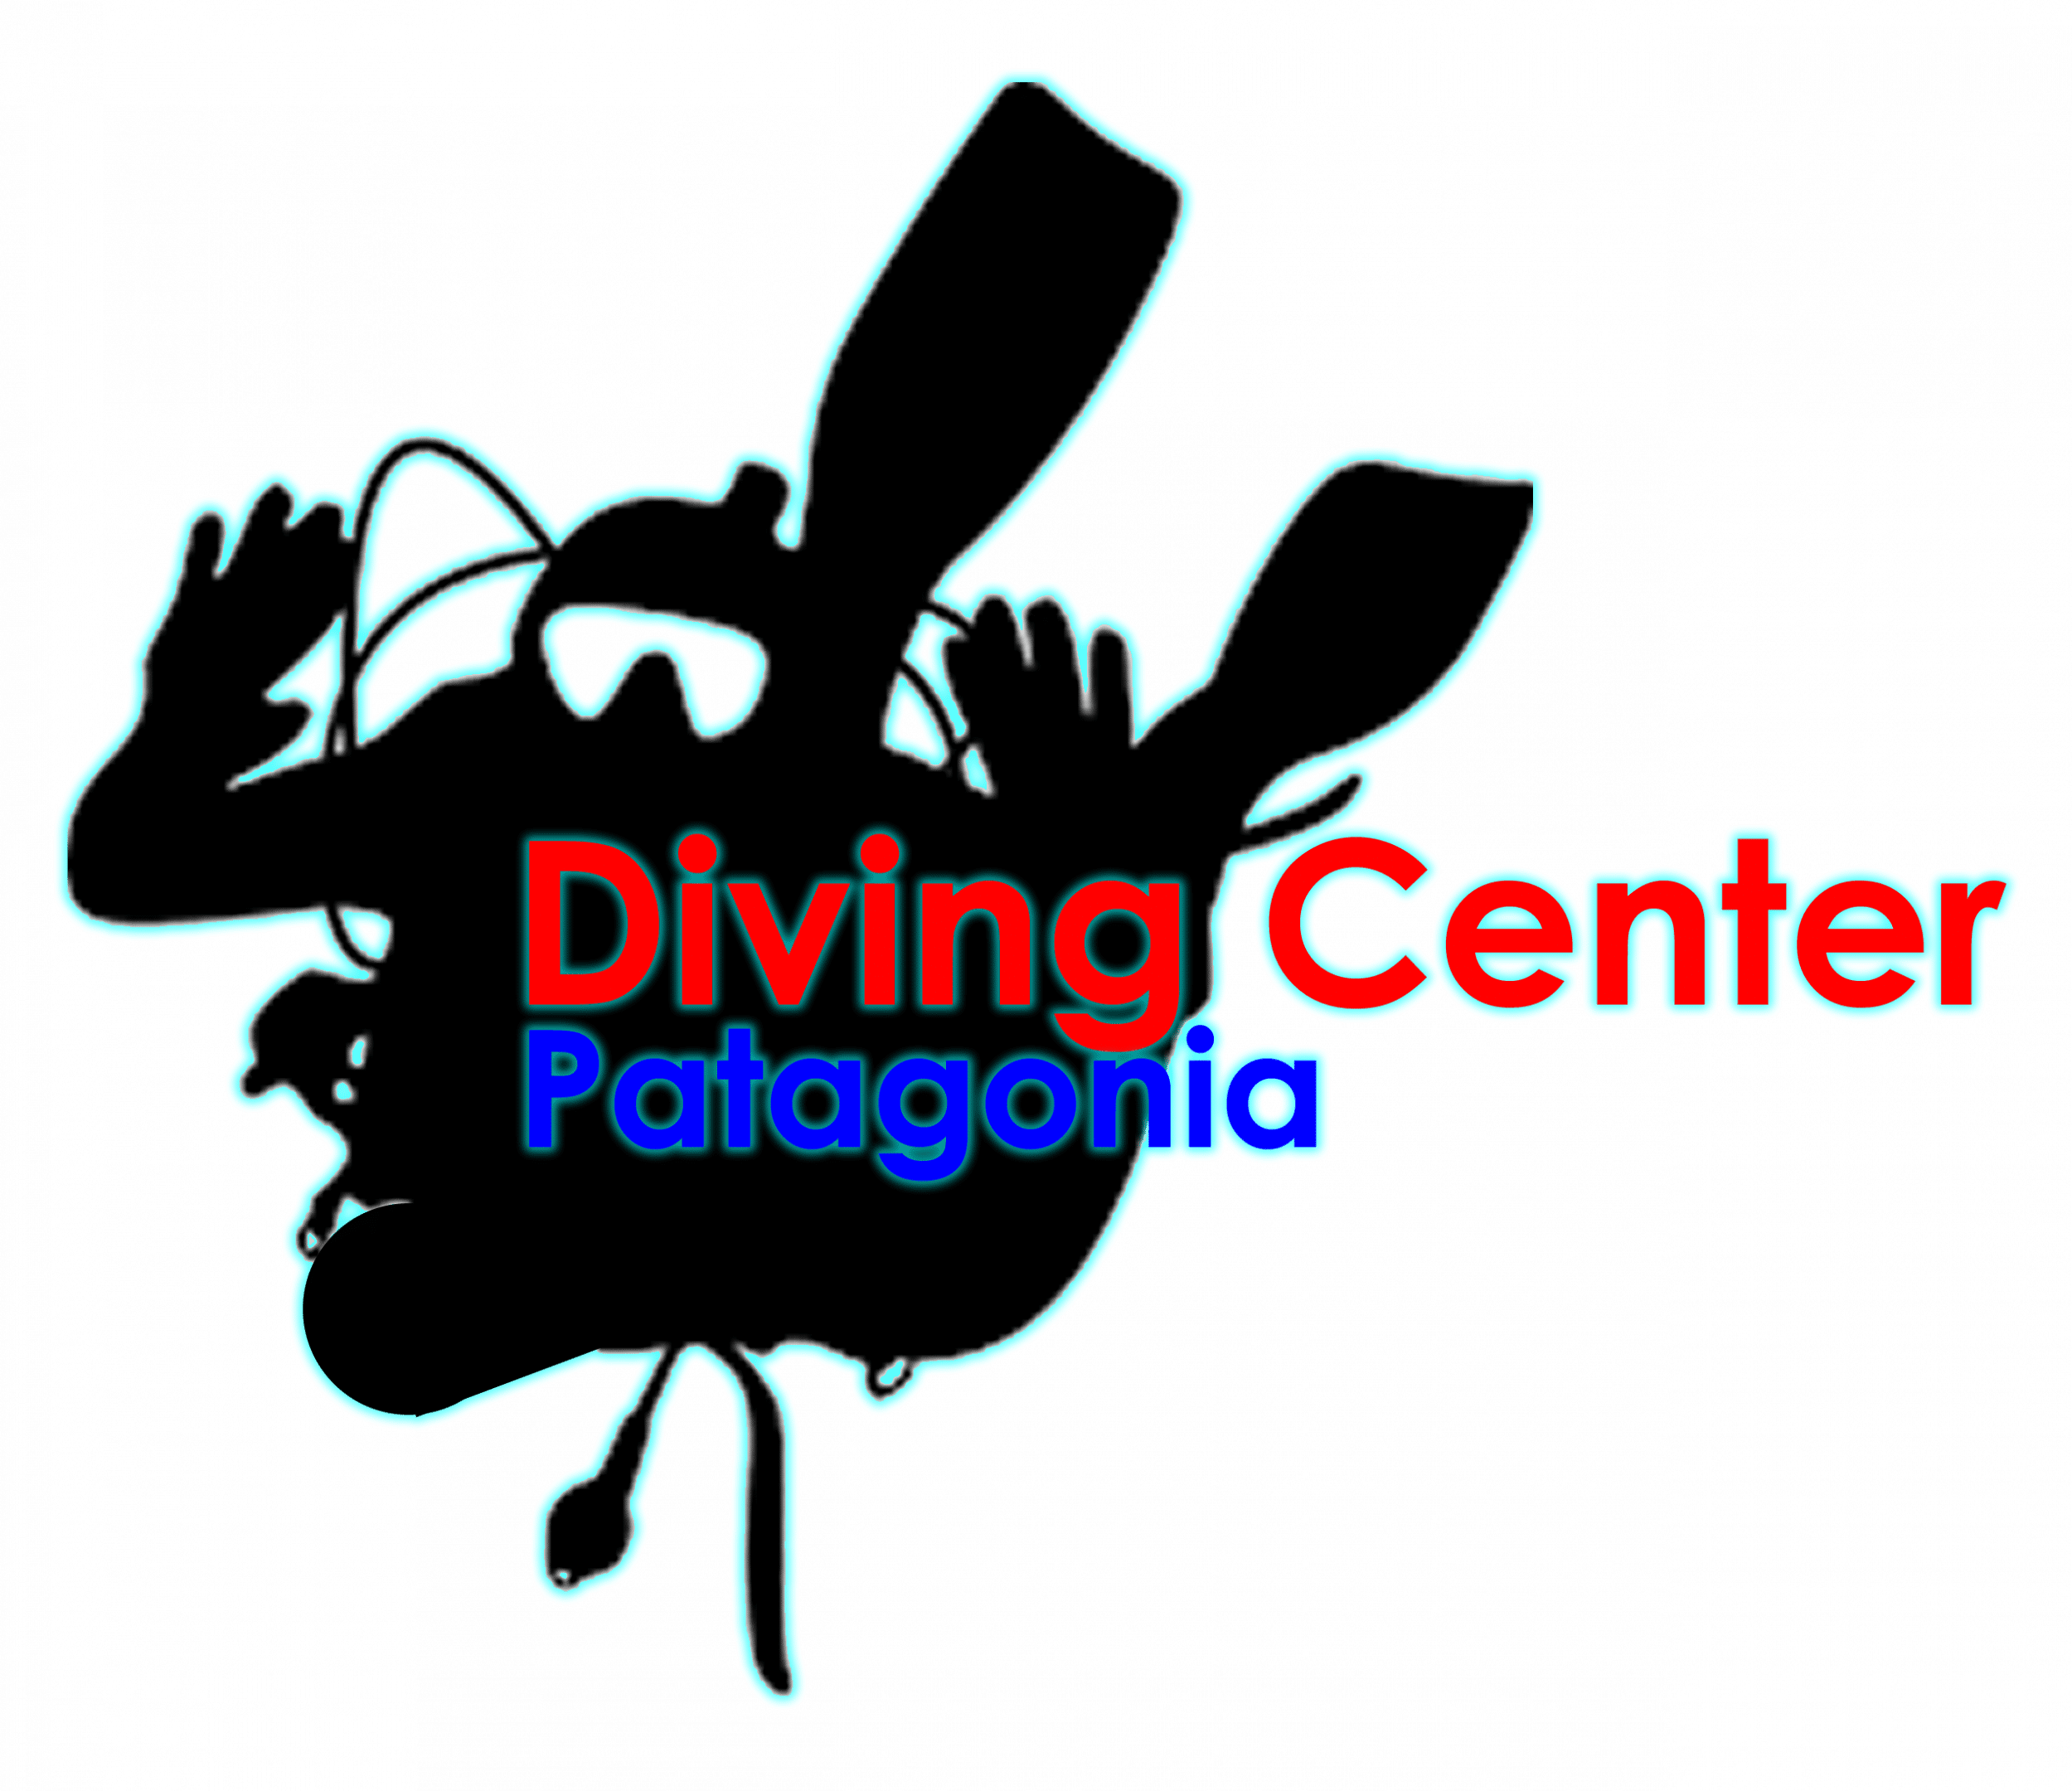 DIVING CENTER PATAGONIA- FACILITY  AECL-004 logo